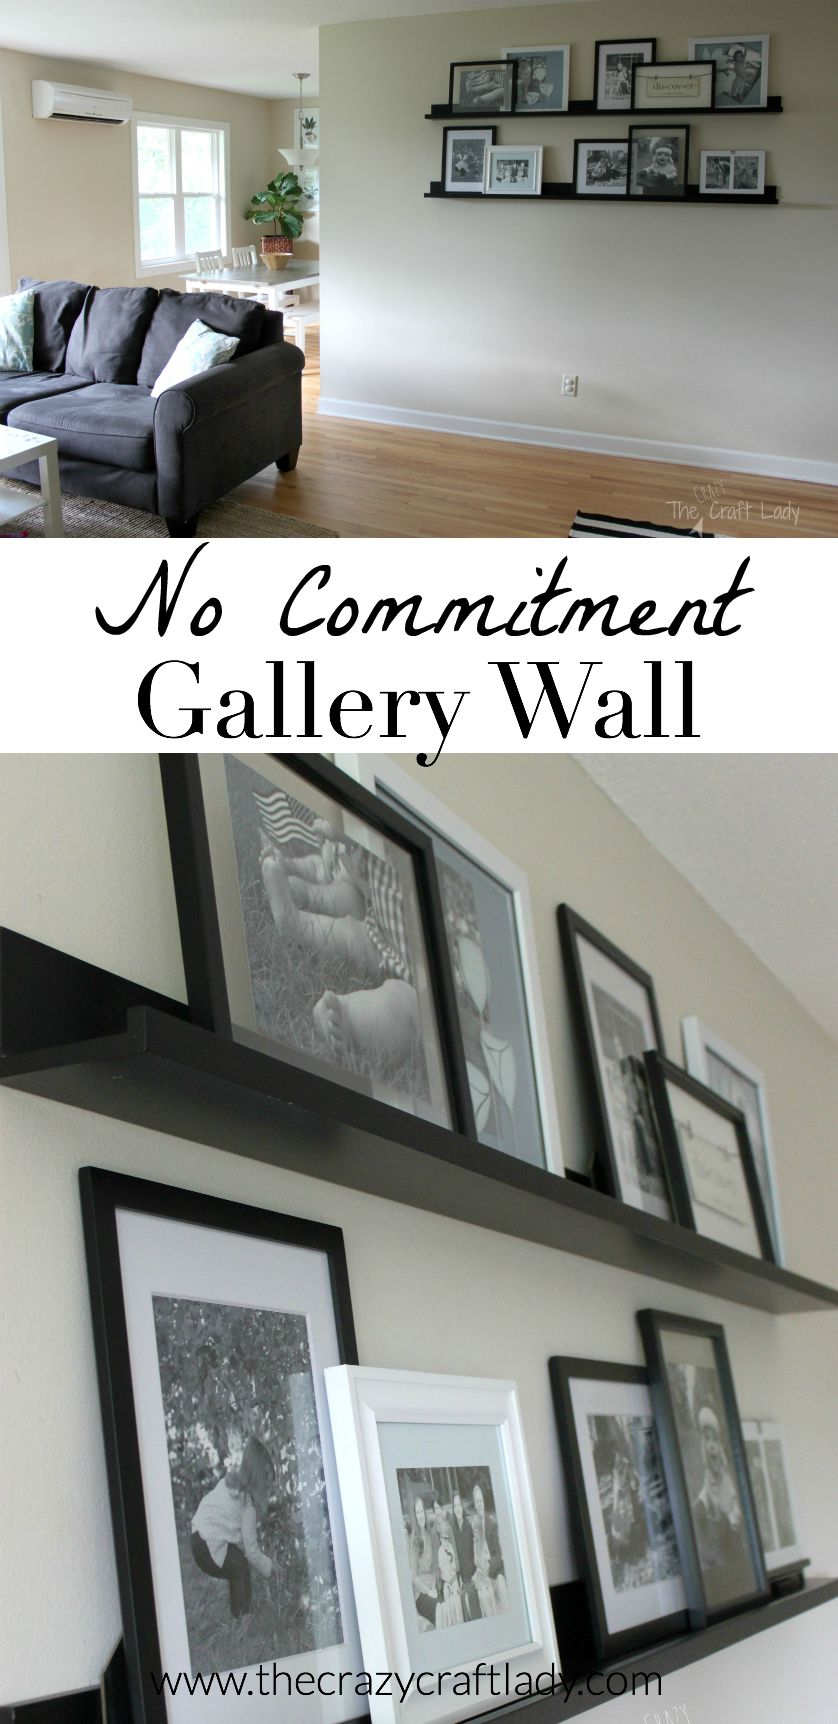 Creating A No Commitment Gallery Wall The Crazy Craft Lady